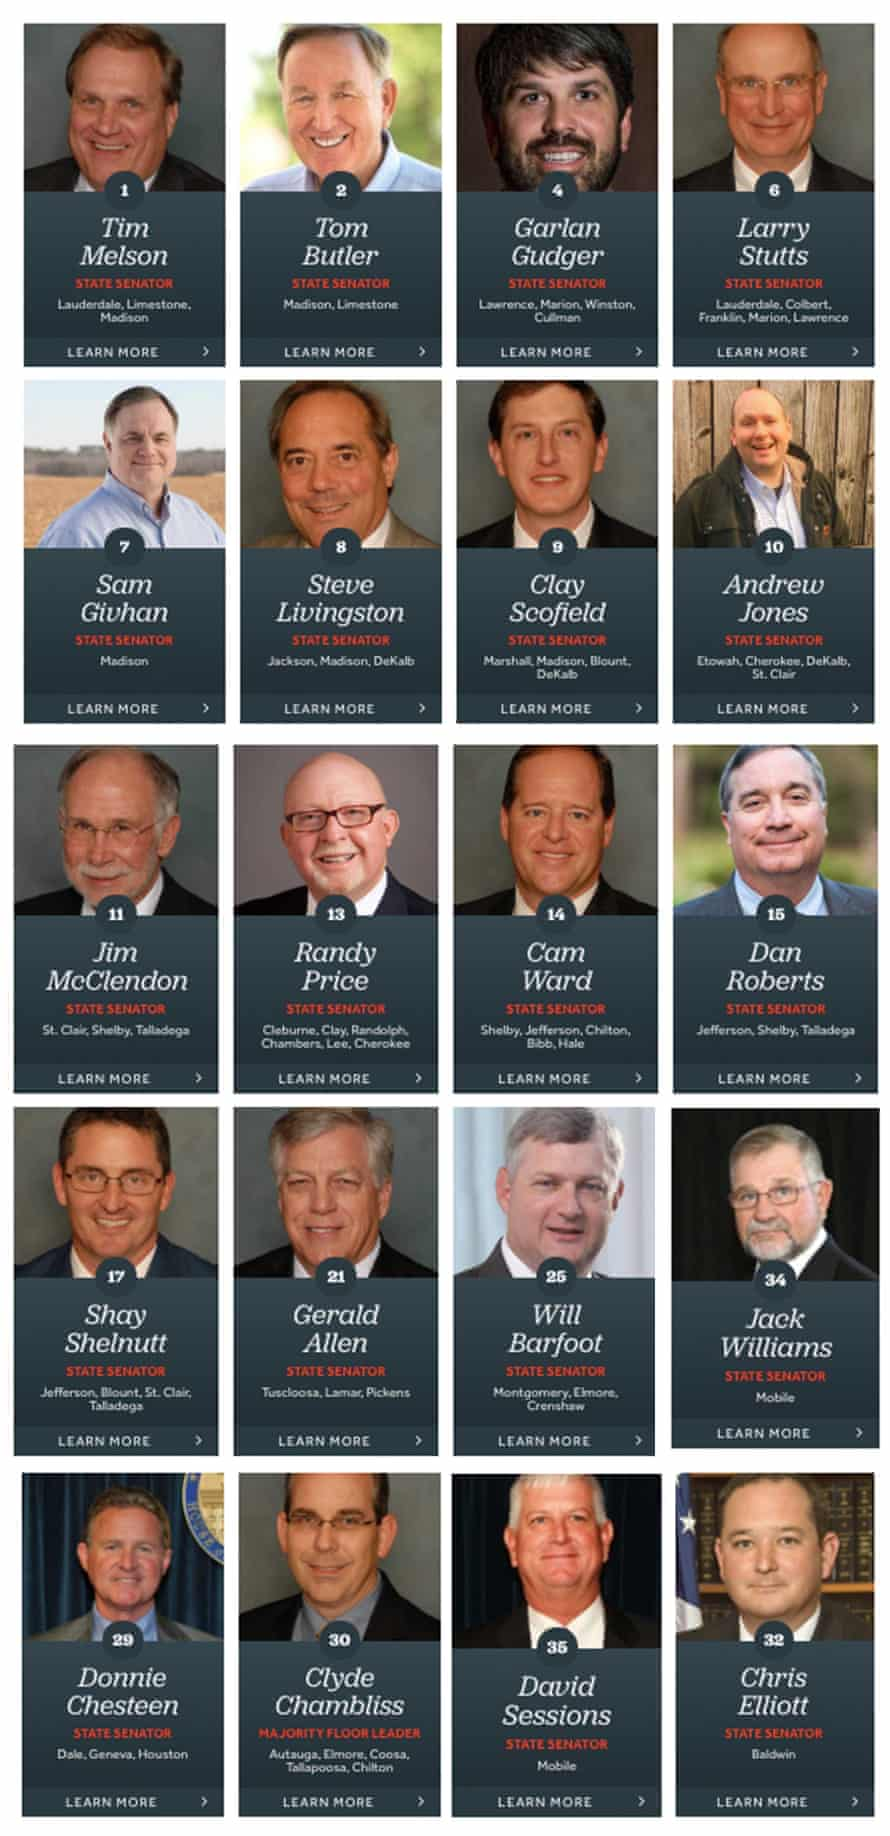 The members of the Republican senate caucus who voted to ban abortion